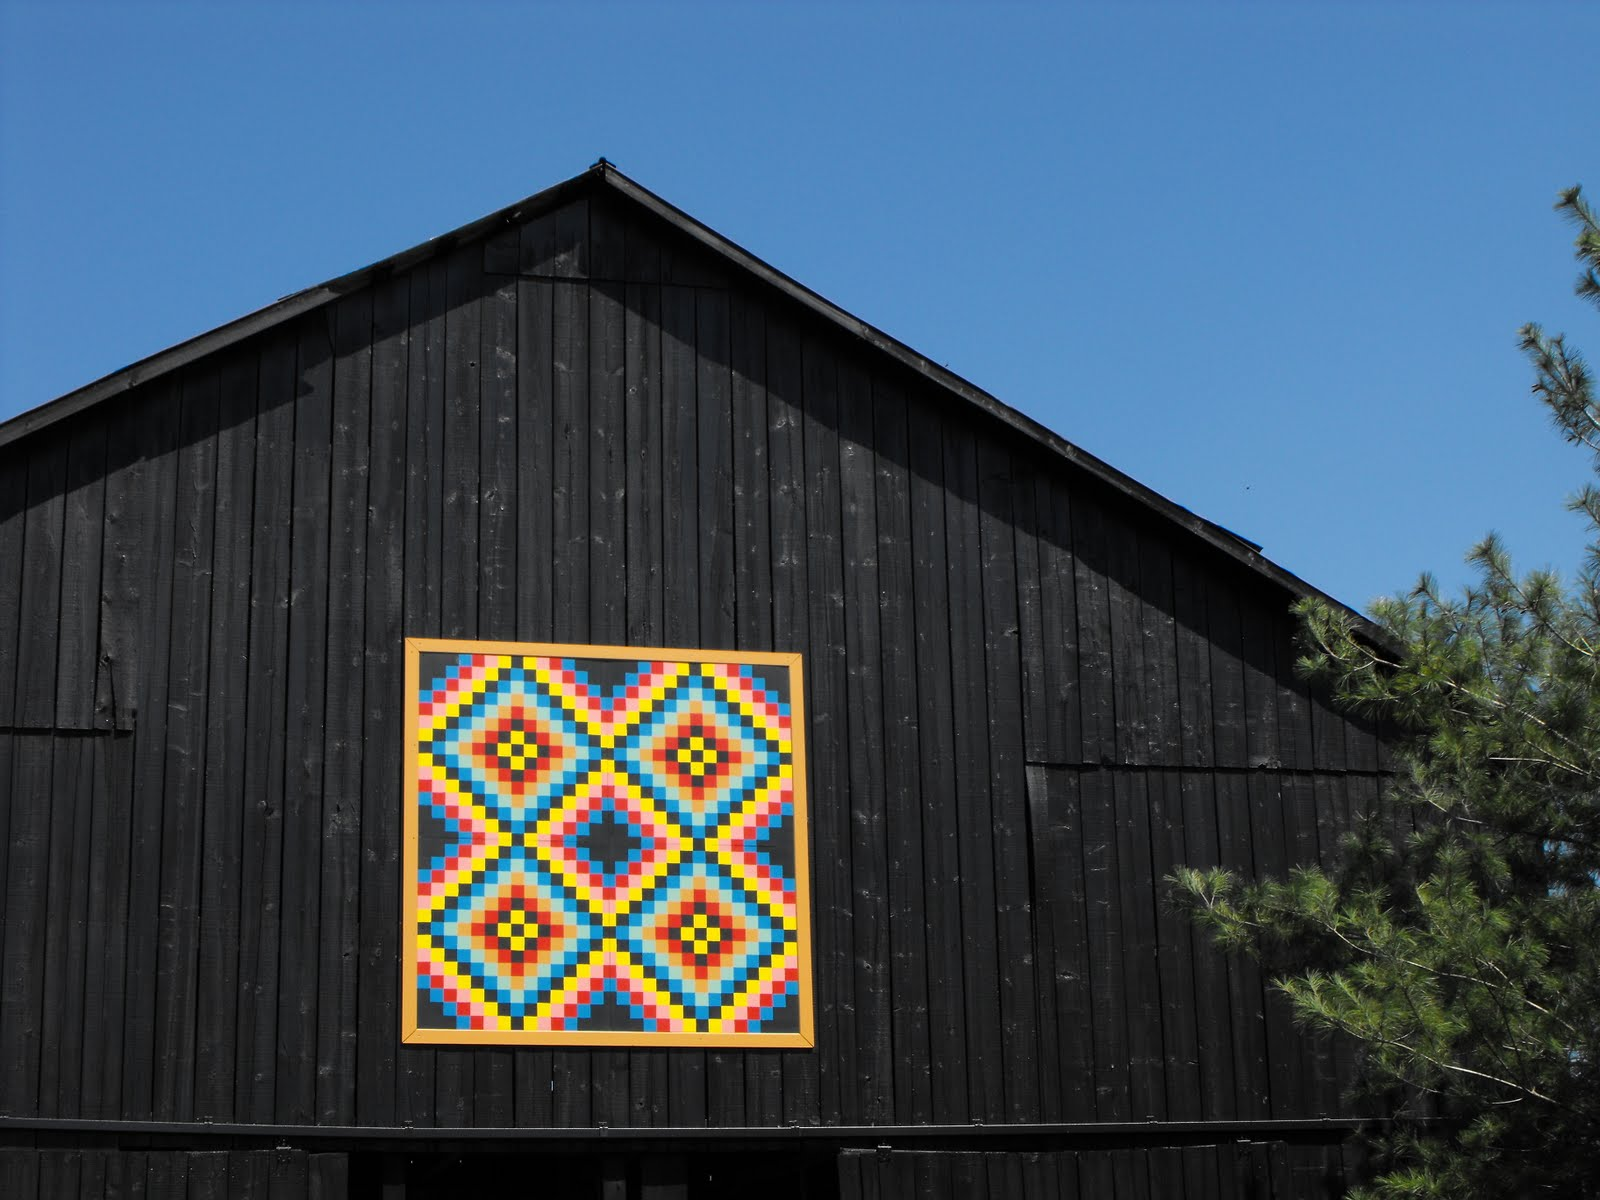 Quilt Patterns On Barns In Ky : Barn Quilts and the American Quilt Trail: Kentucky Memories